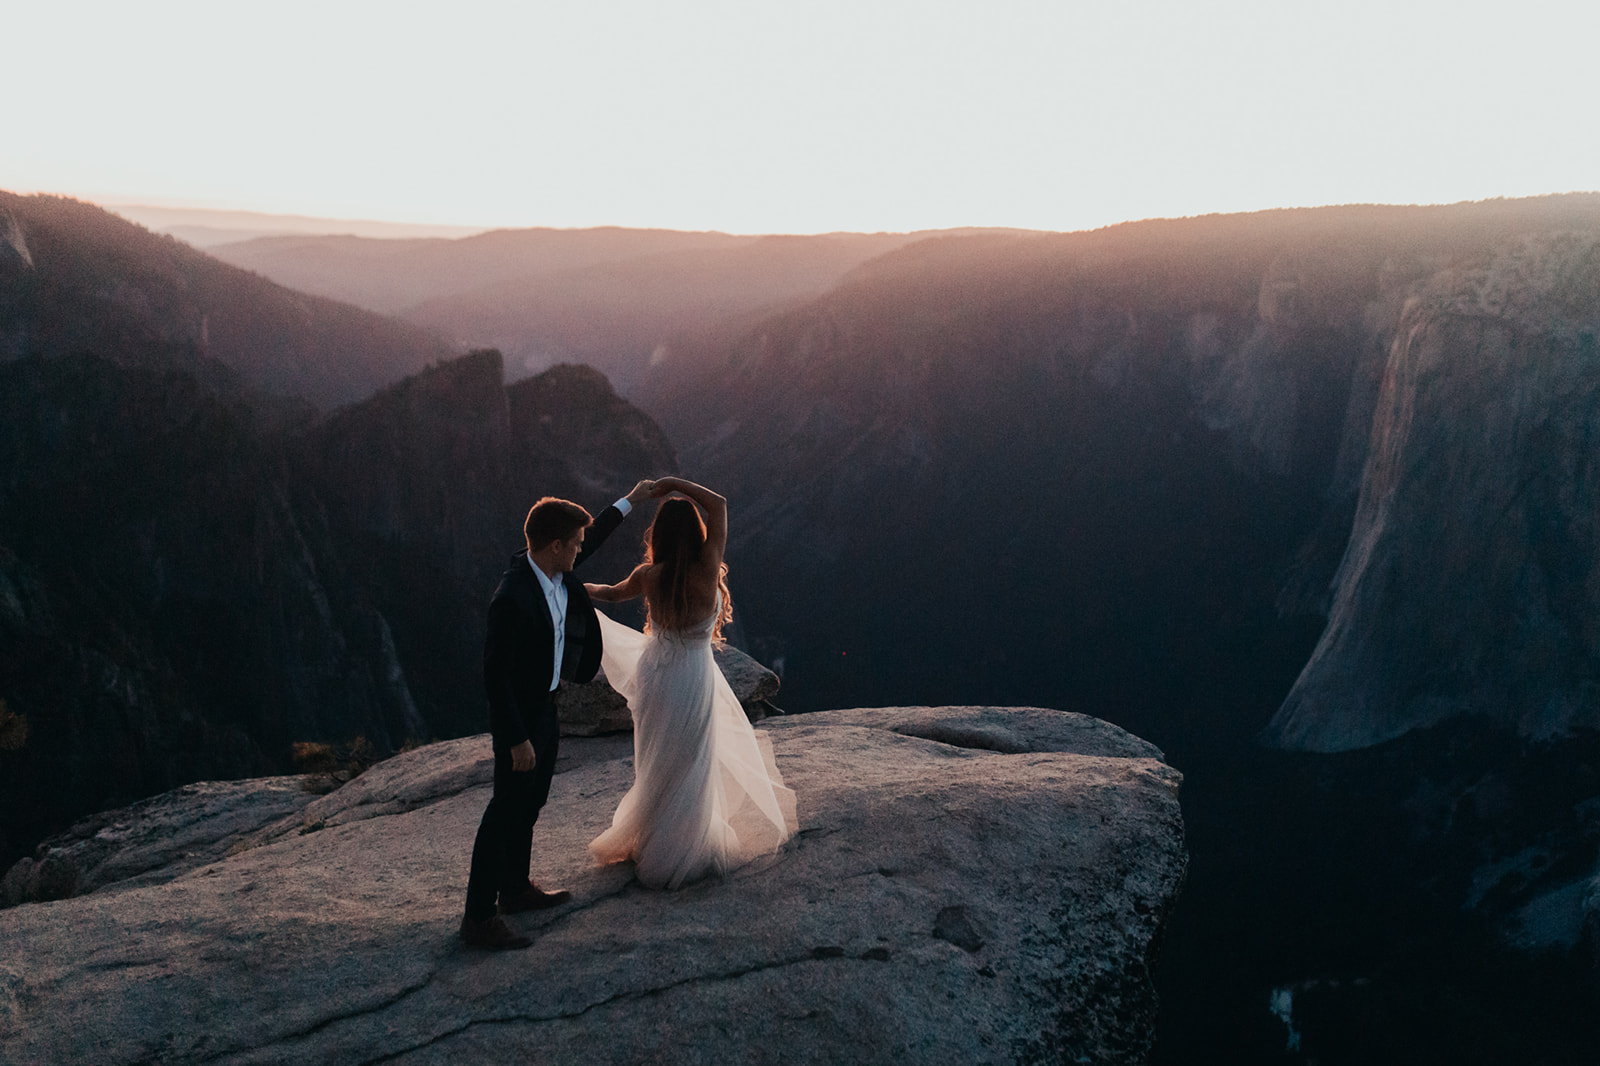 Julian_Laura_Yosemite_Elopement_Taft_Point_Glacier_Point_sunrise_sunset-229.jpg